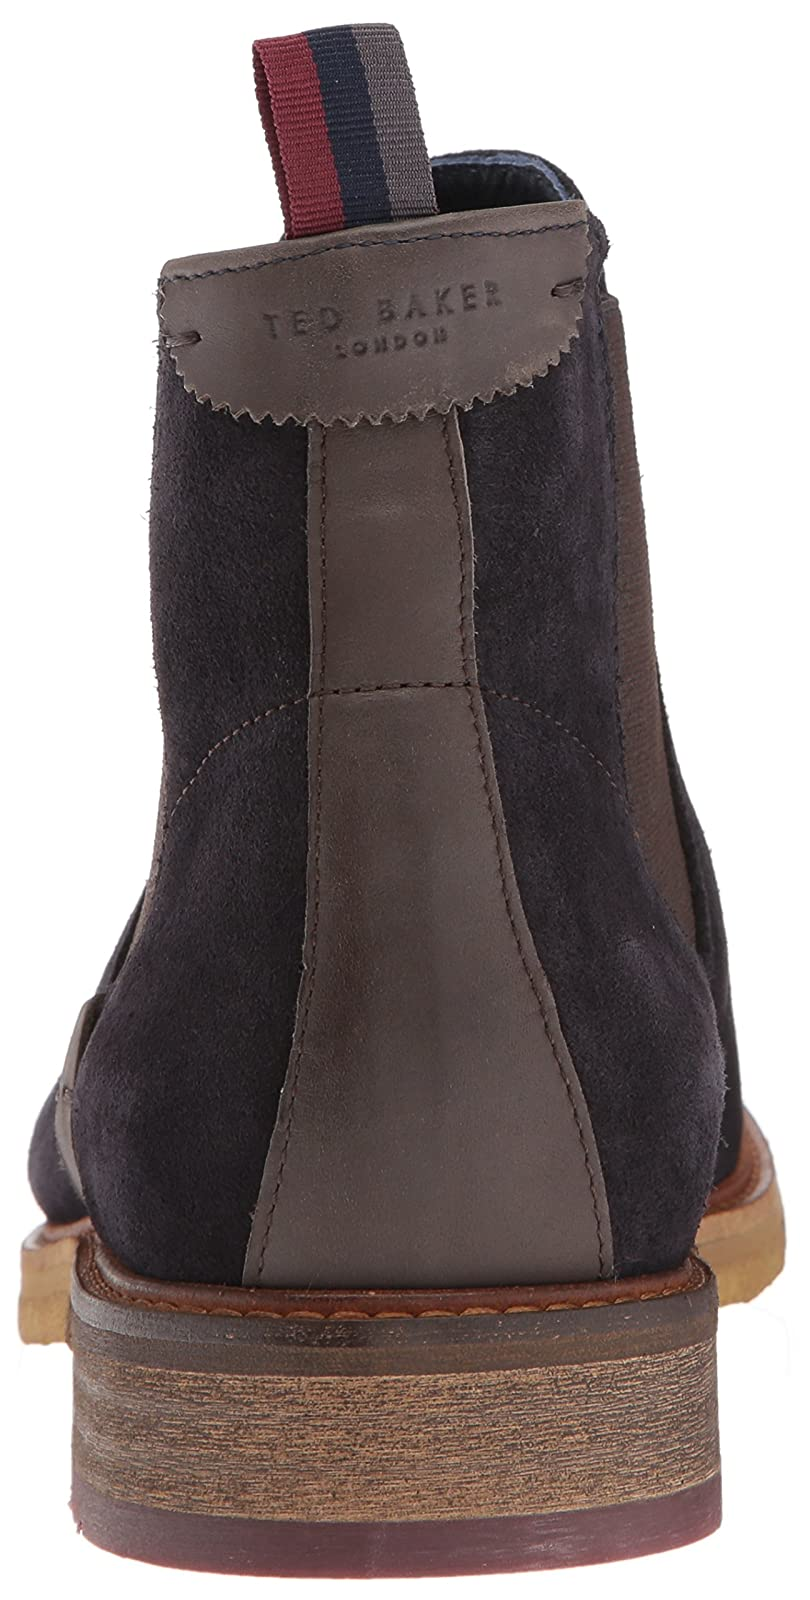 Ted Baker Men's Bronzo Chelsea Boot 12 M US - 2